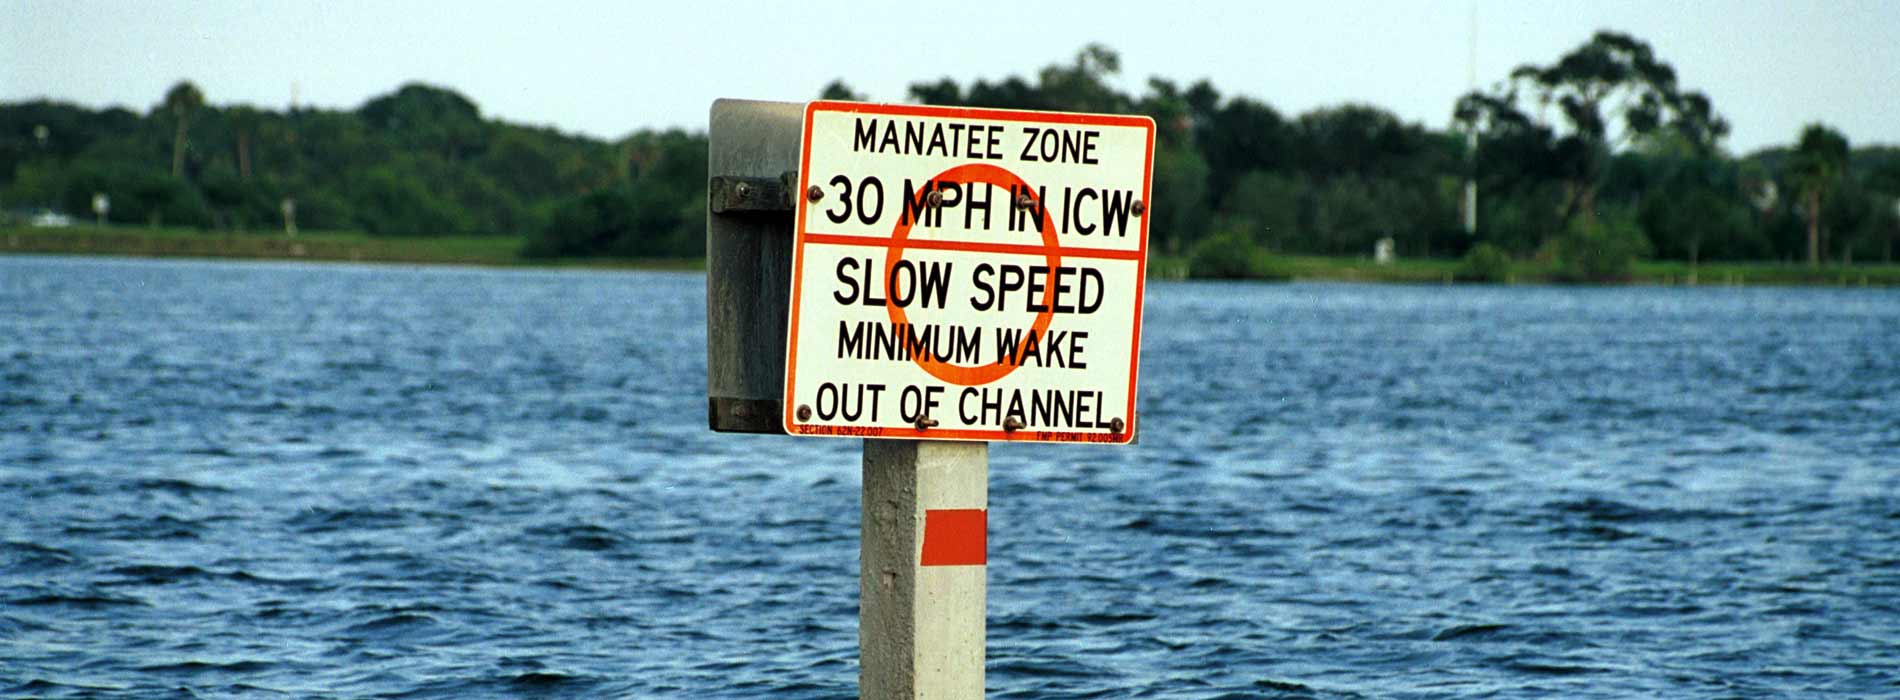 Slow for manatees sign